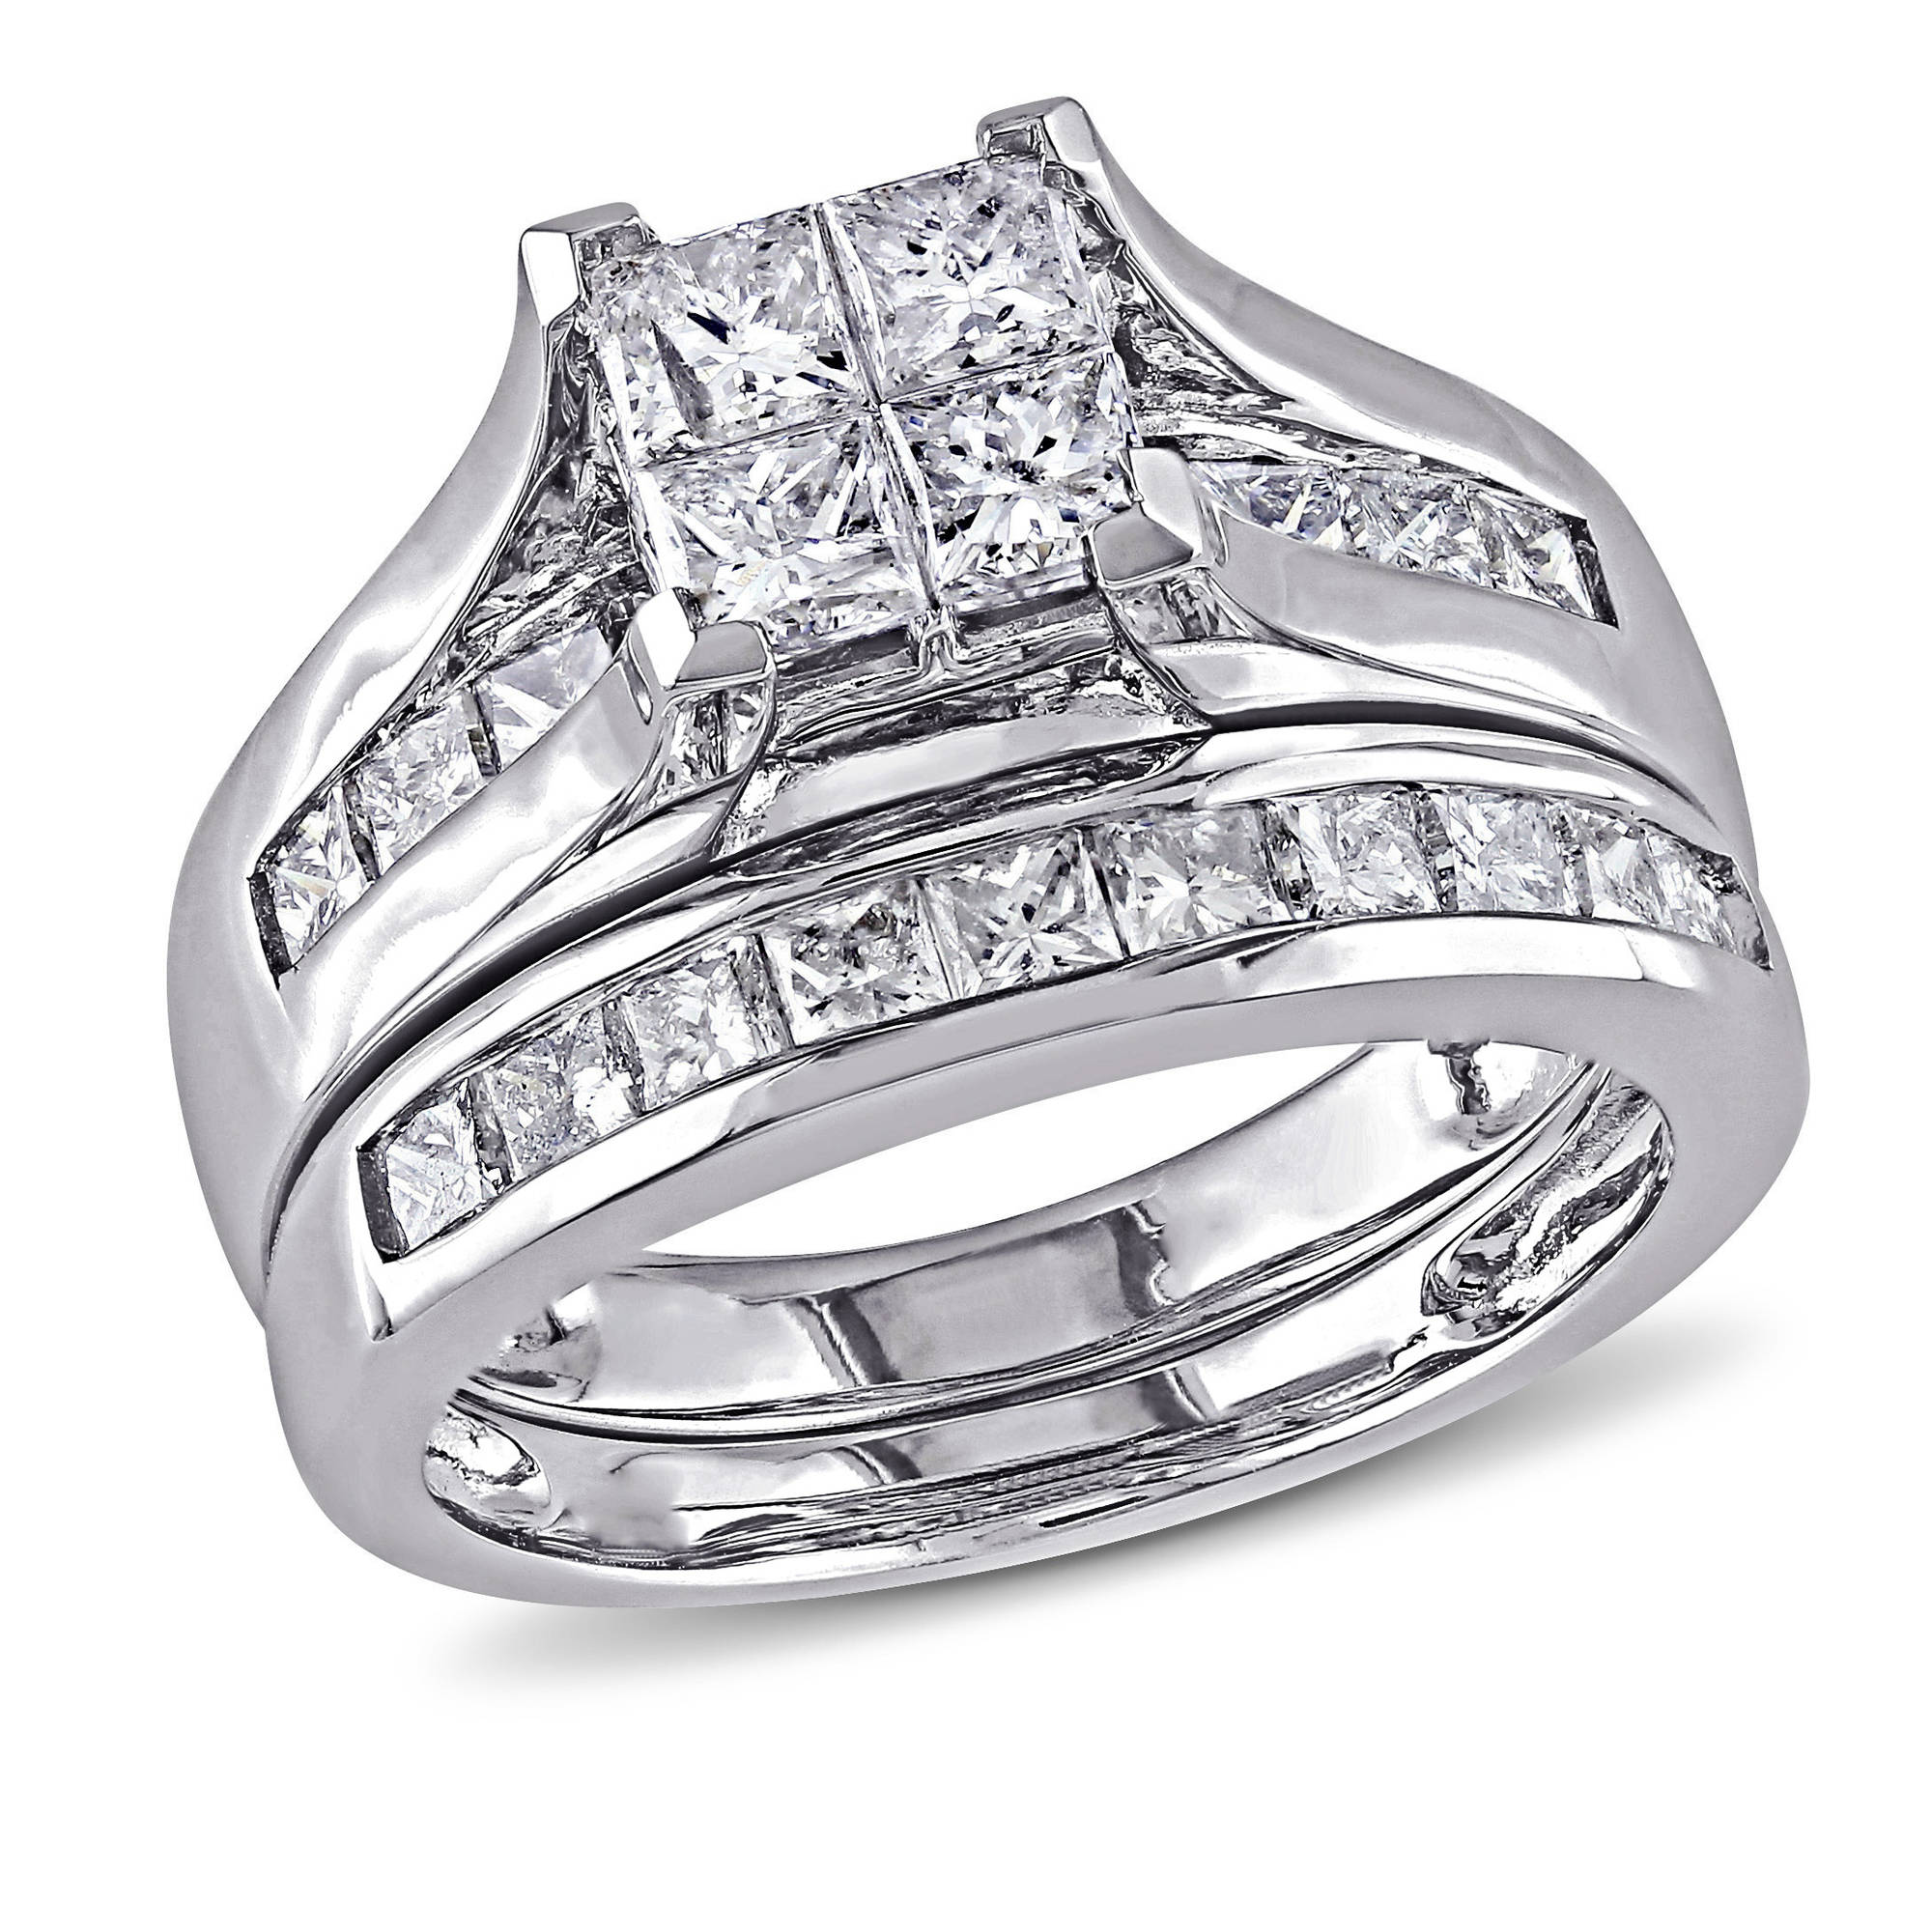 Miabella 2 Carat T.W. Princess-Cut Diamond 14kt White Gold Bridal Set by Delmar Manufacturing LLC